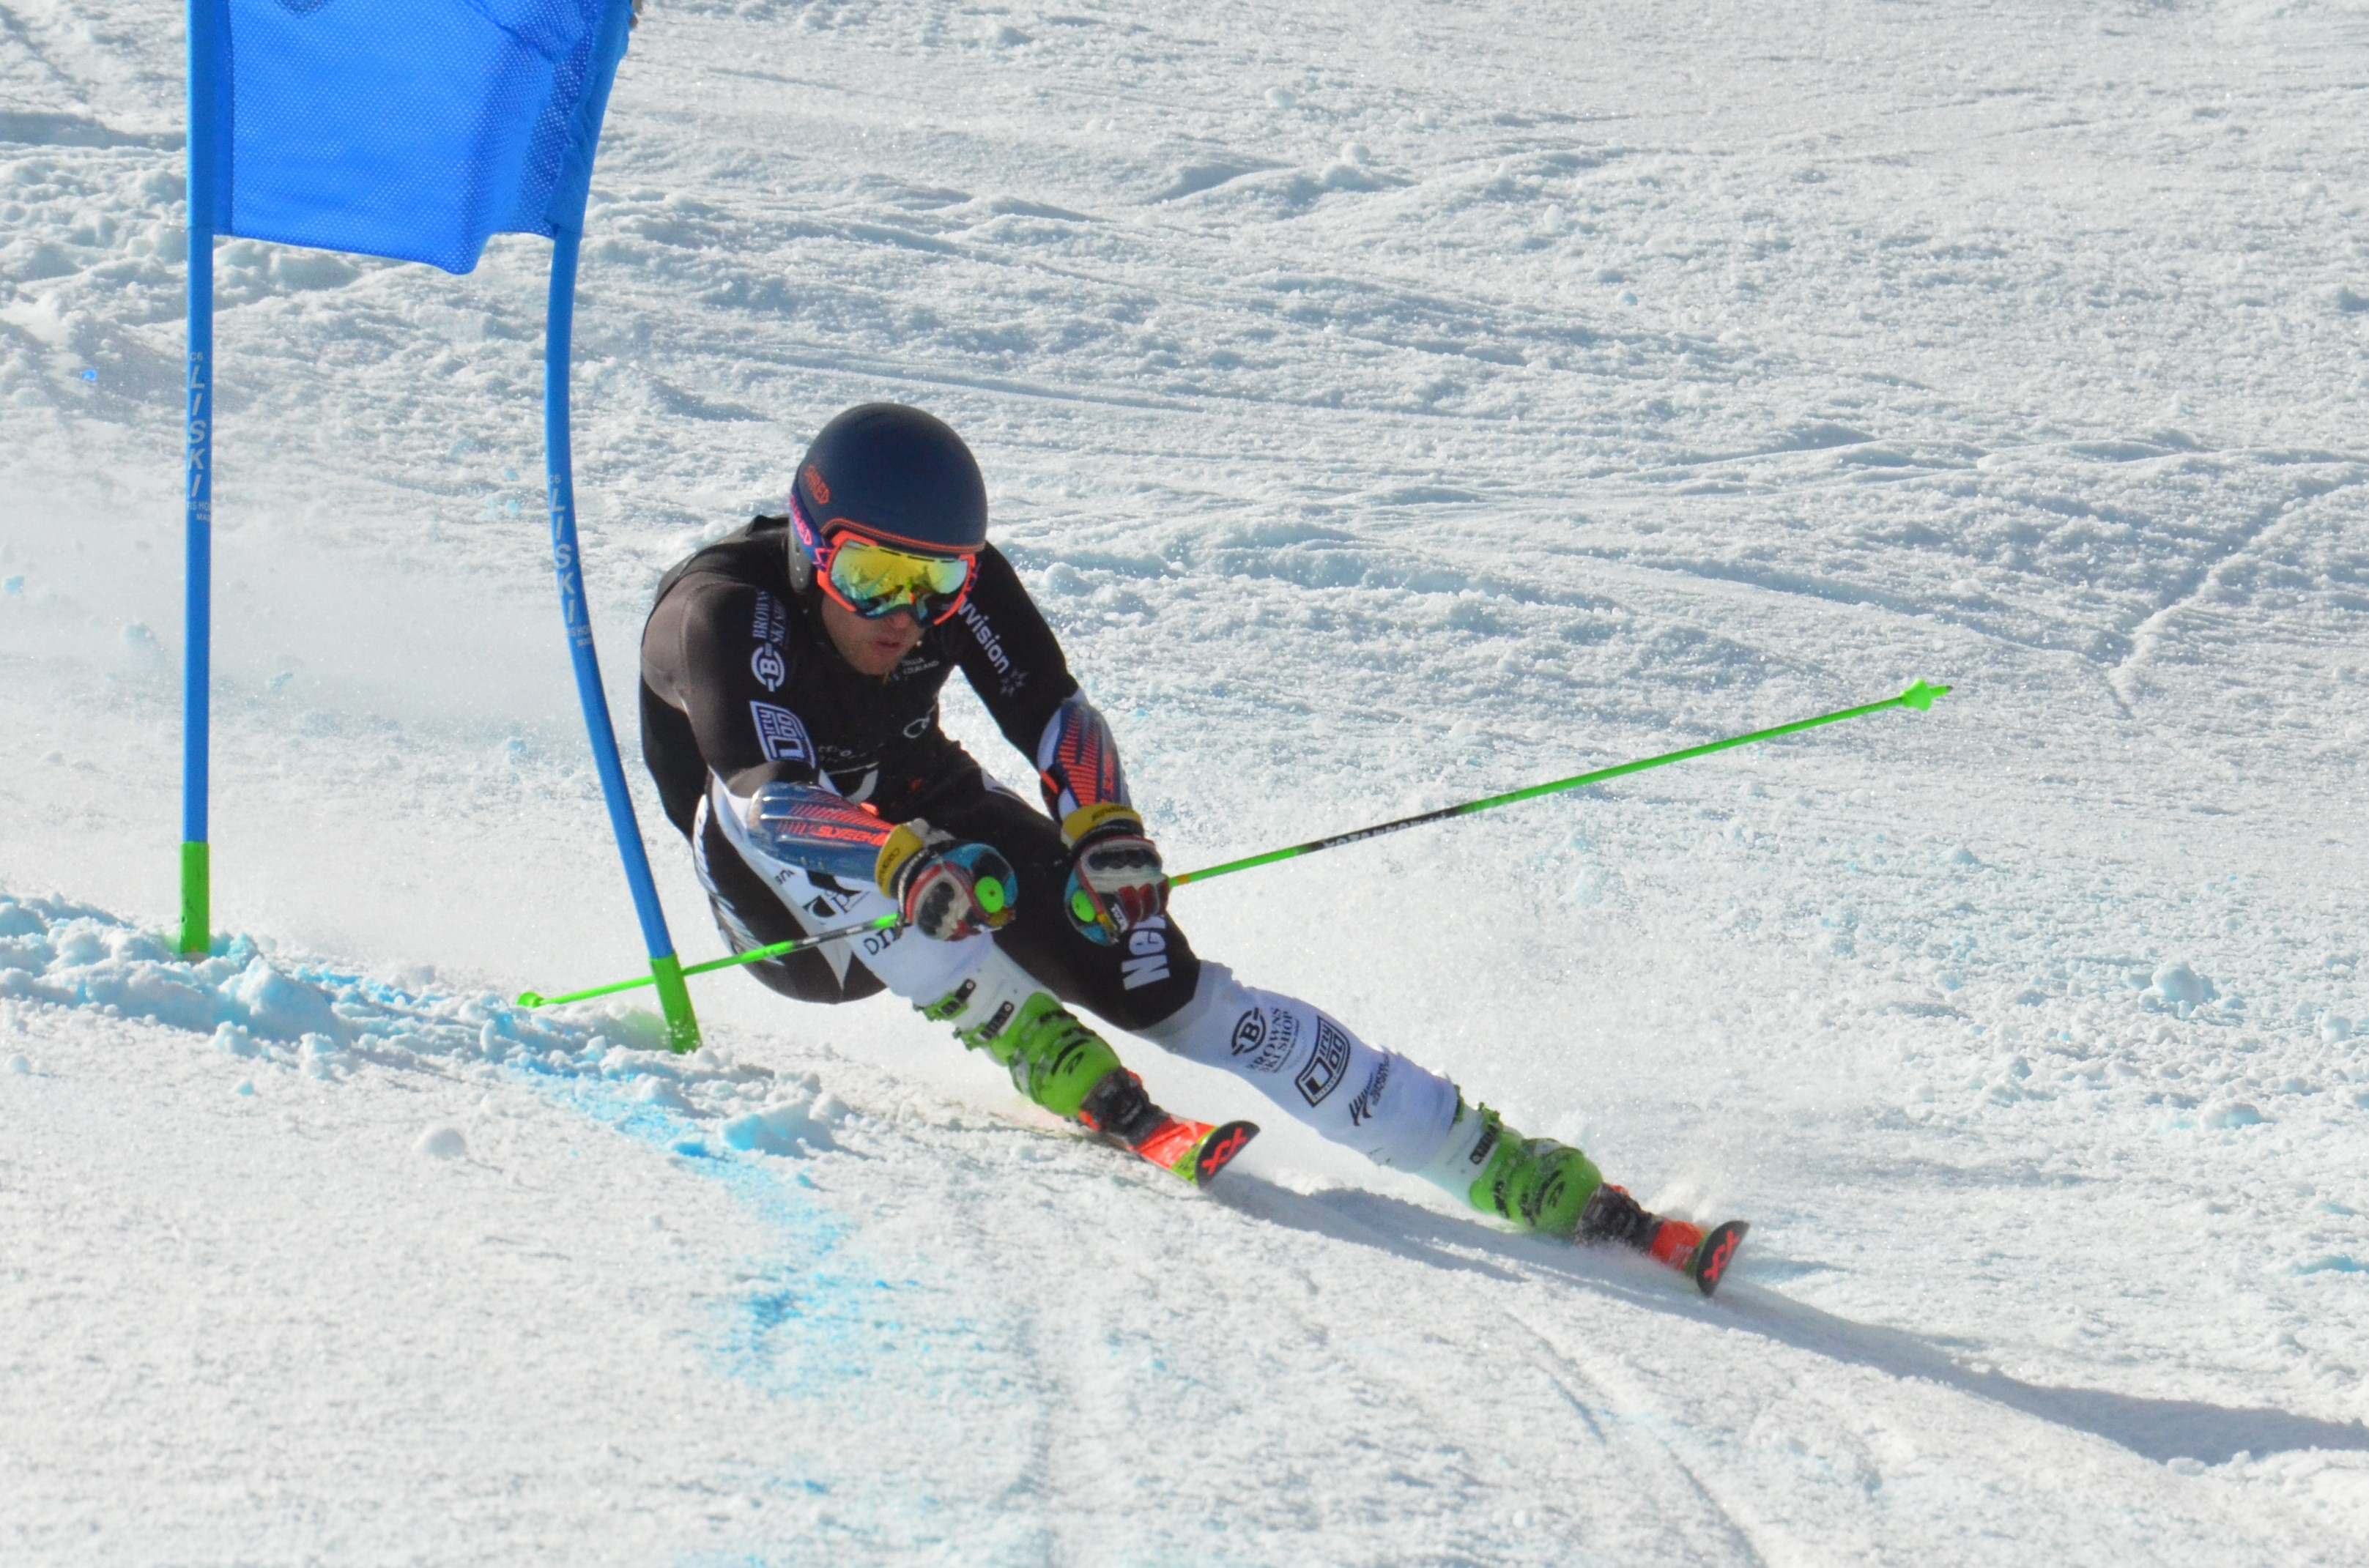 Giant Slalom racing, Coronet Peak